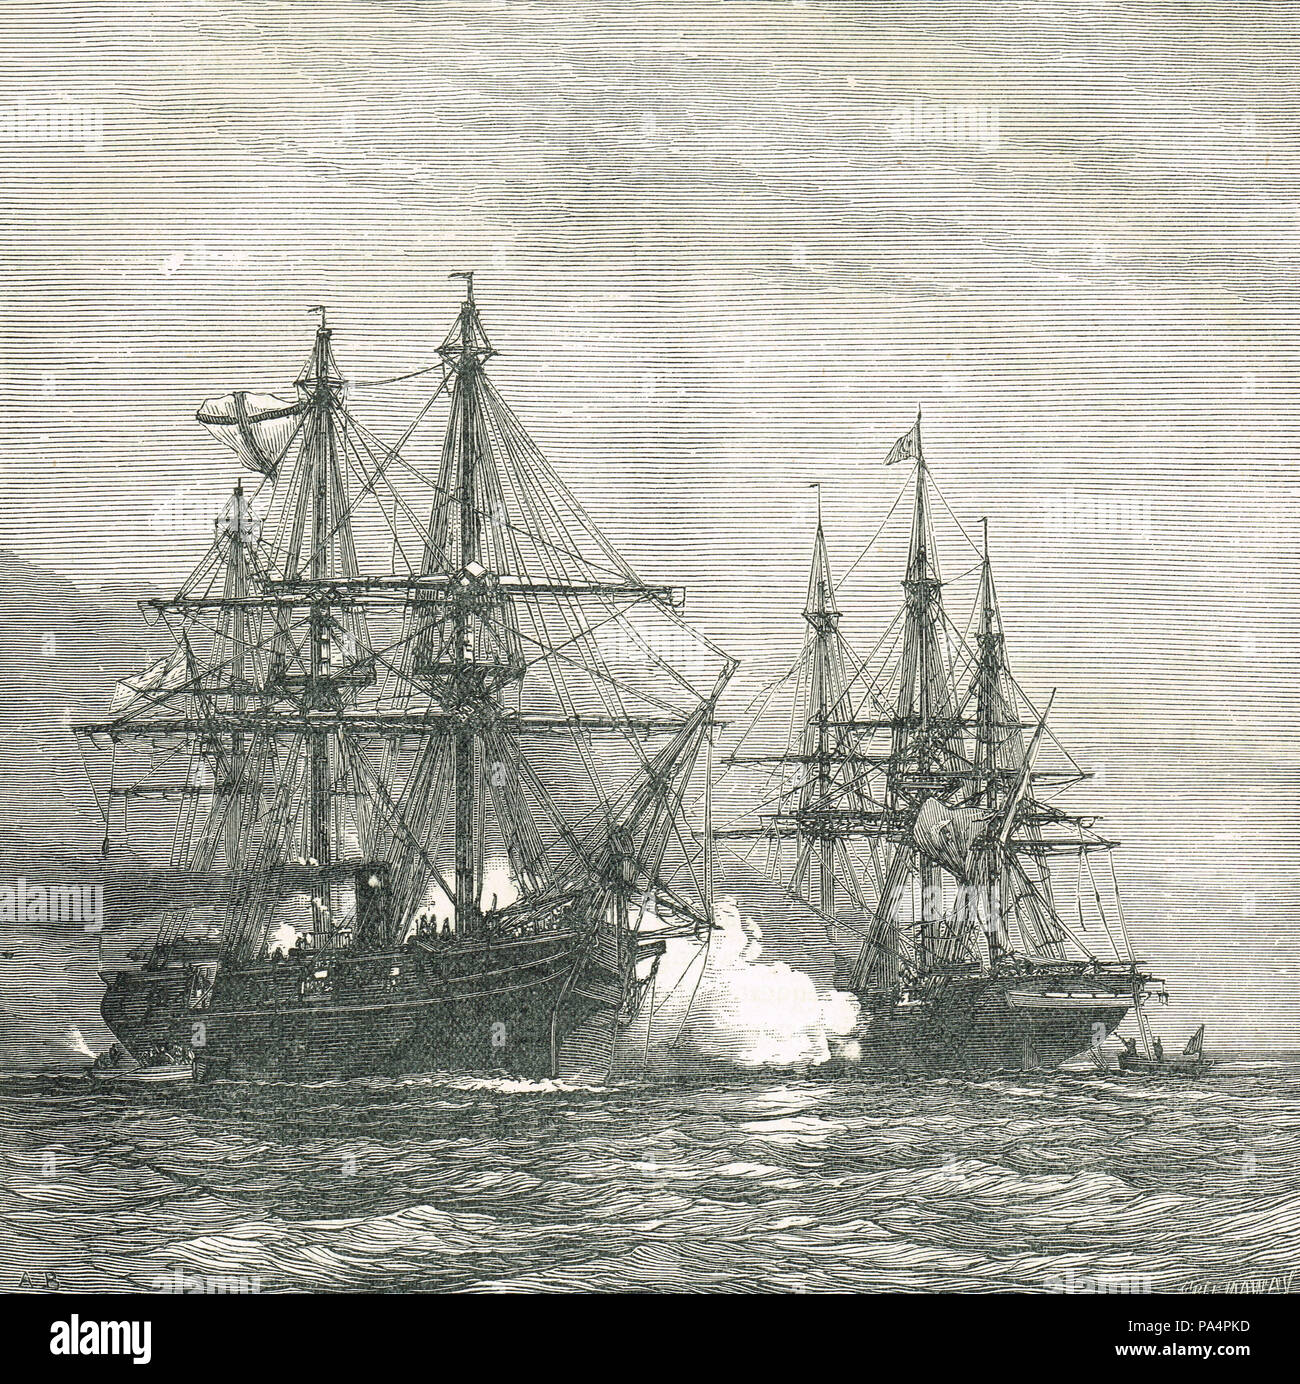 Capture of the Turkish steamer Mercene by the Russia, 23 December 1877, during the Russo-Turkish War 1877-78 - Stock Image